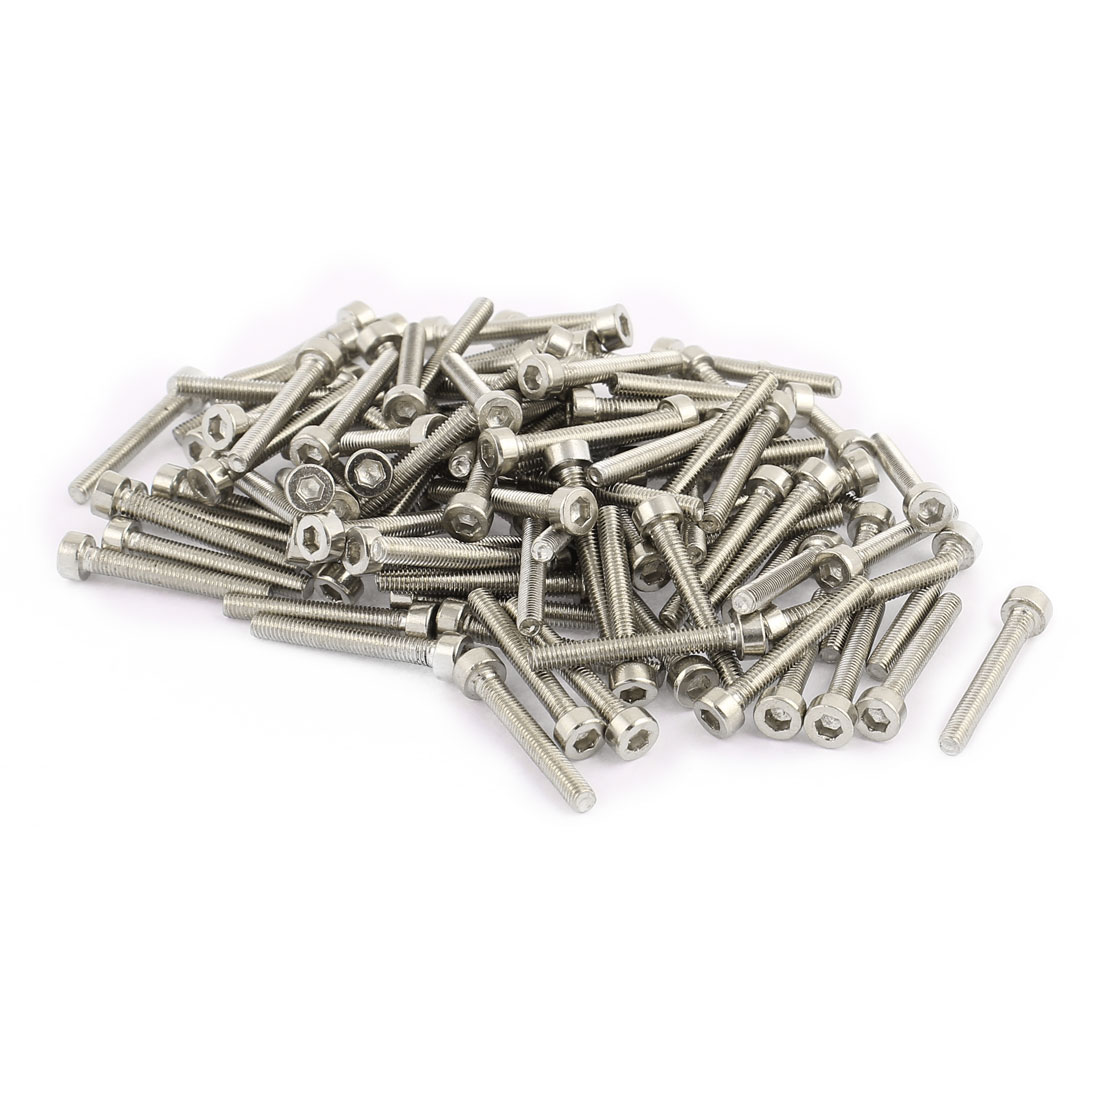 100Pcs Silver Tone M3 x 22mm Stainless Steel Hex Bolt Socket Head Cap Machine Screws